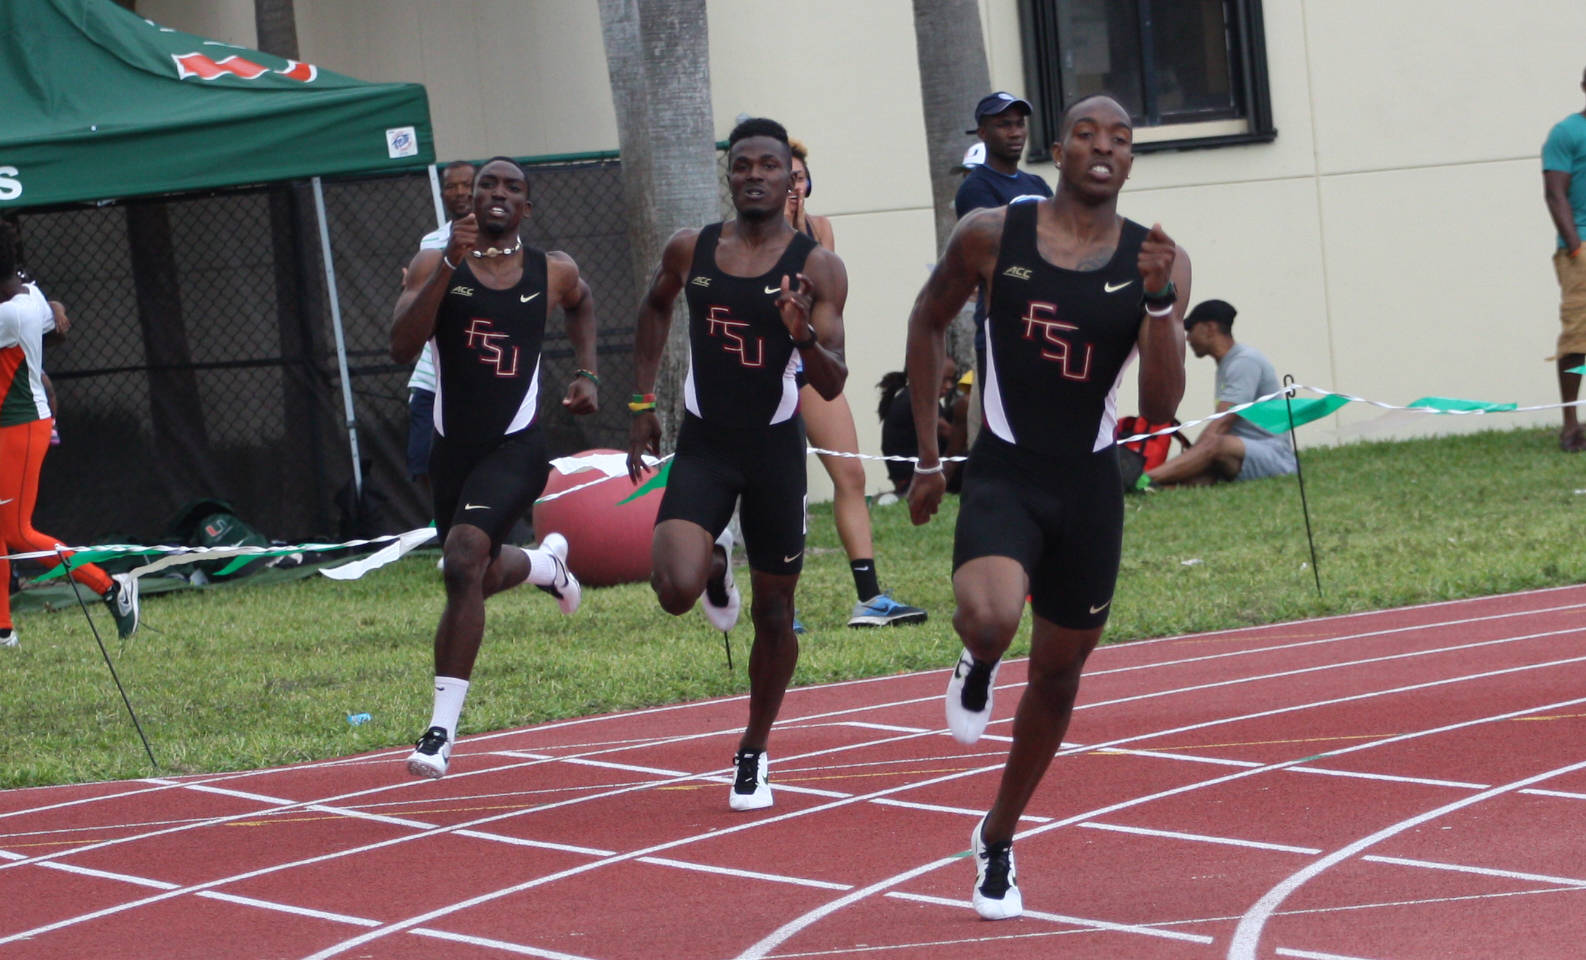 R-to-L, Michael Cherry, Alistair Moona and Ricky Roy off the turn in the 400.